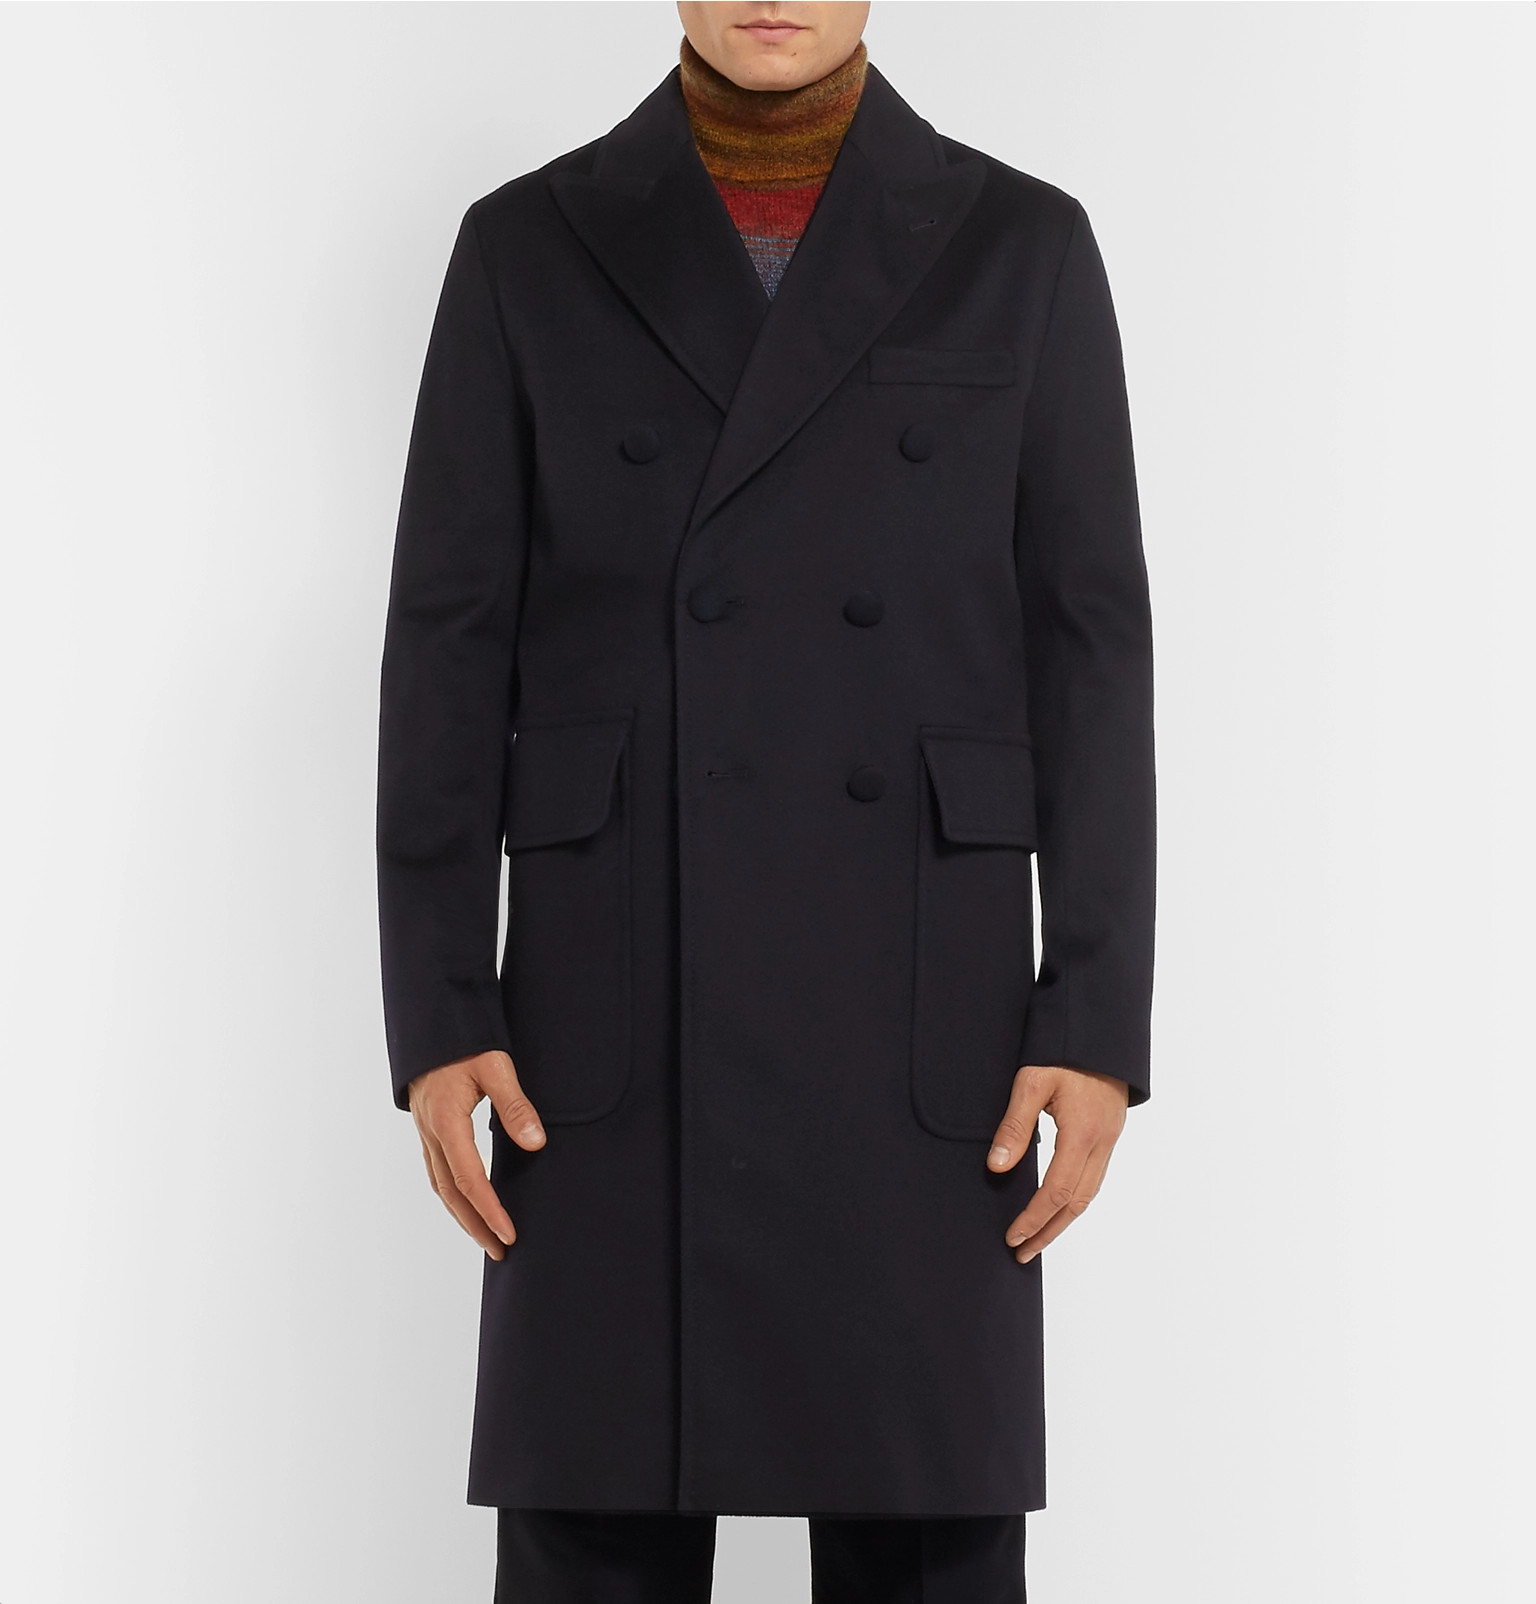 Overcoat Officine Generale Wool Double Breasted System Storm wBAFwqz